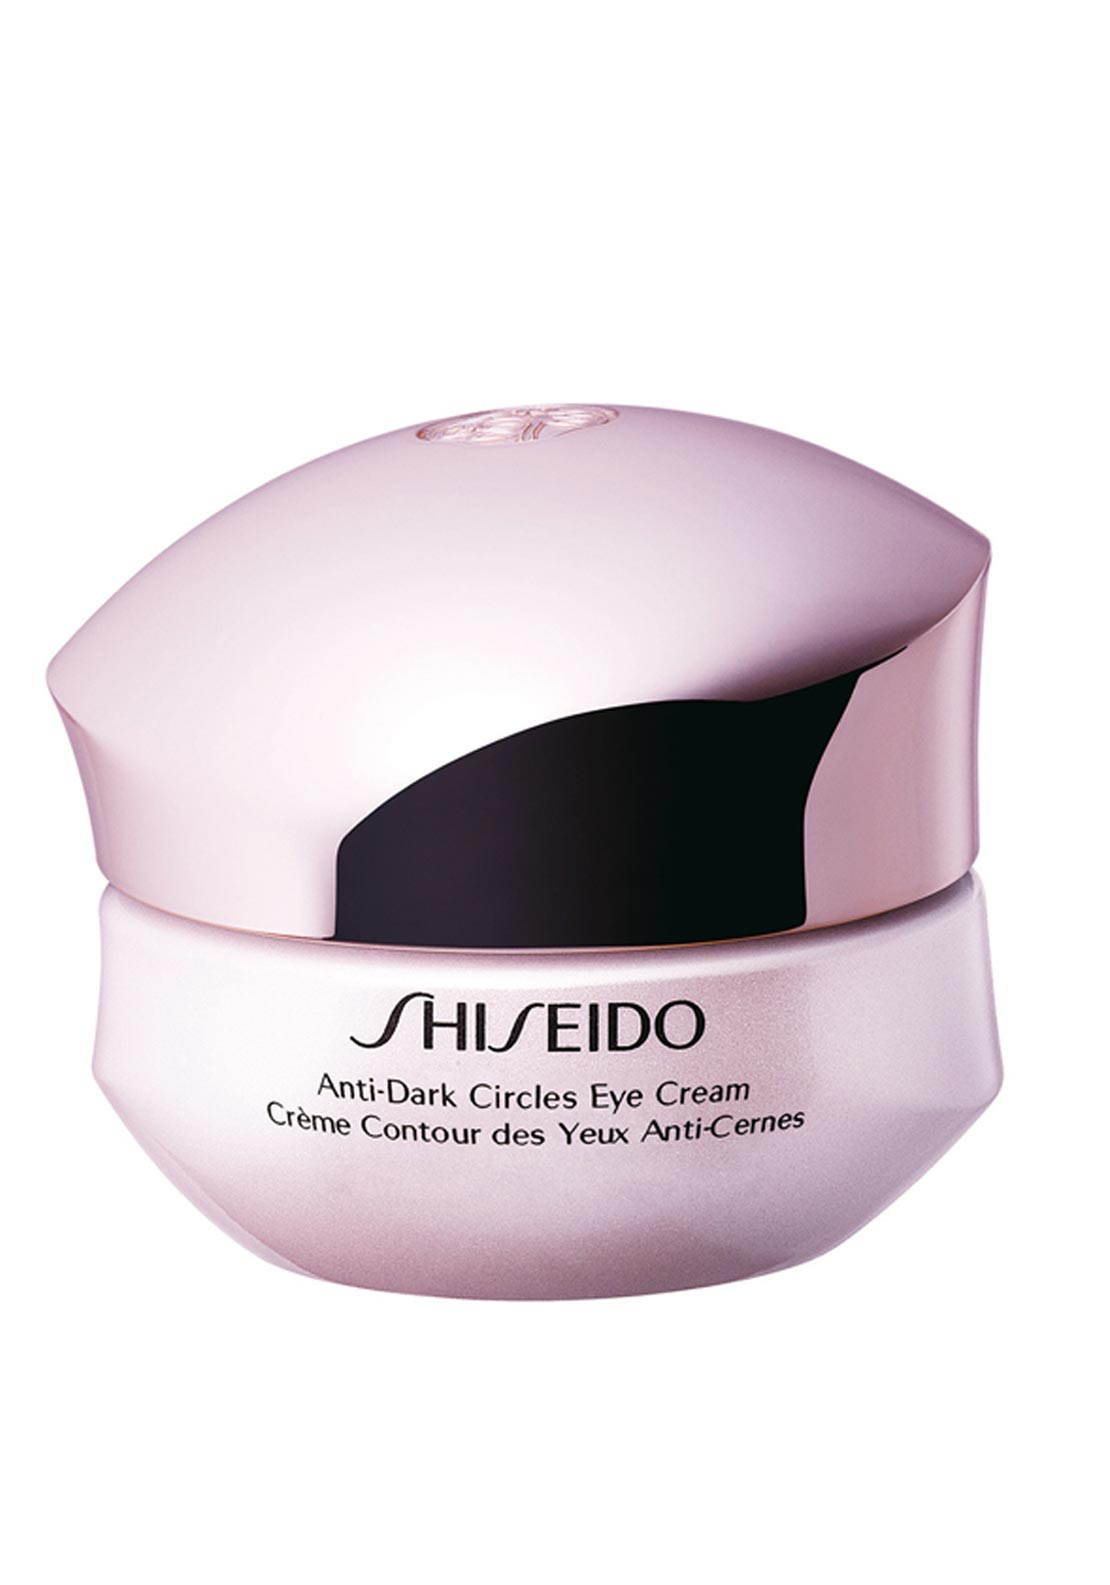 Shiseido Anti-Dark Circles Eye Cream, 15ml